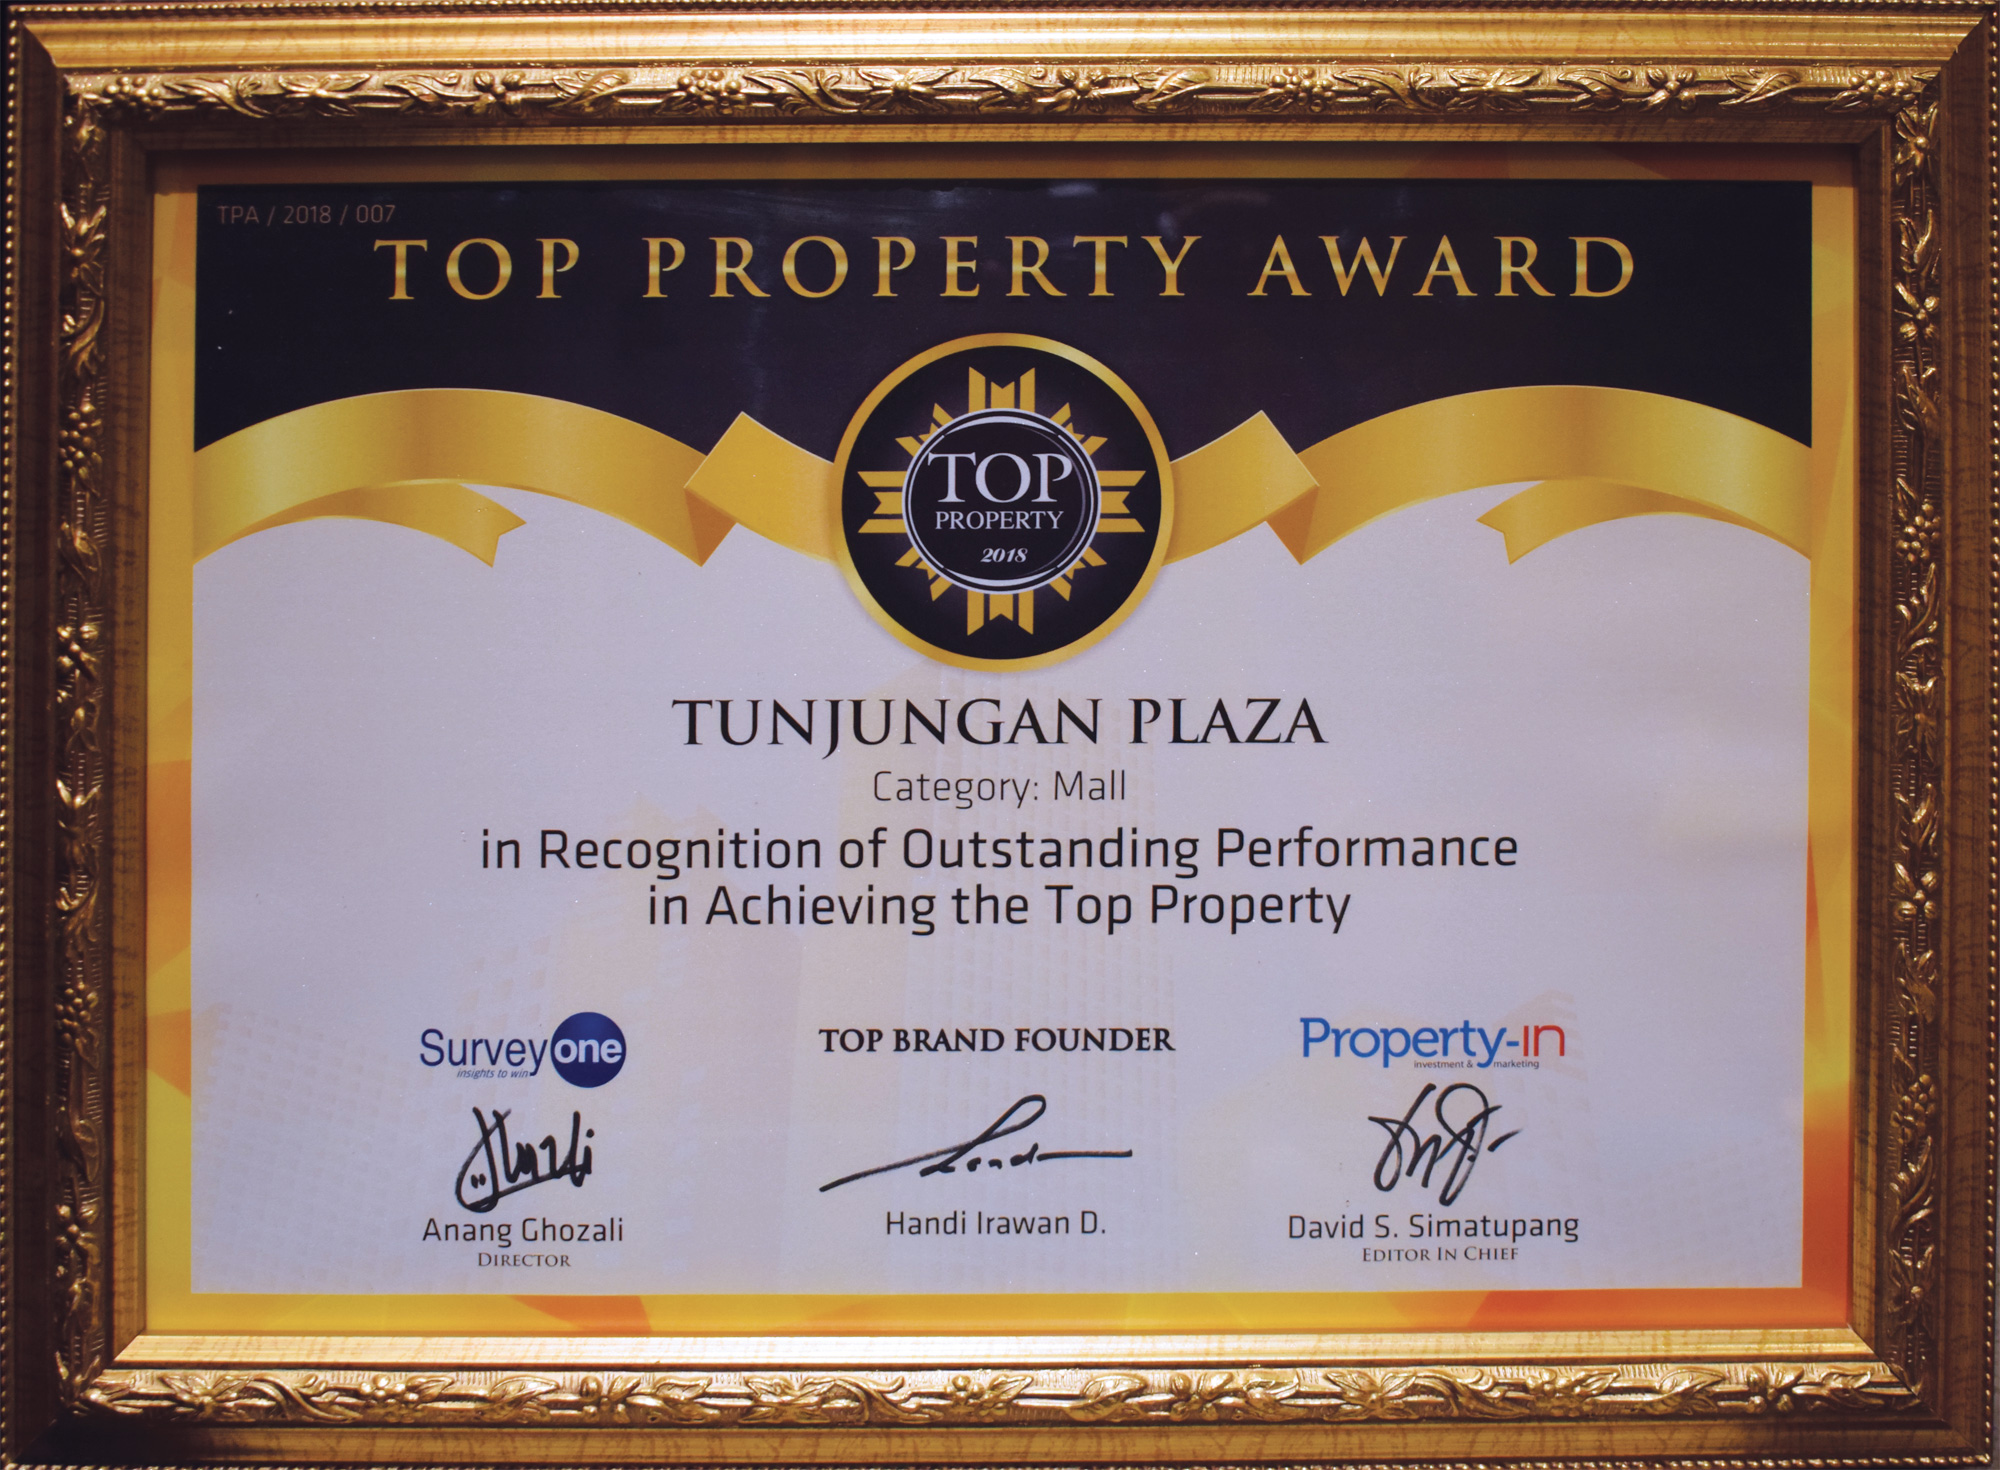 /public/files/image-companny/award-slider/11.TopPropertyAward-TUNJUNGANPLAZA-InRecognitionofOutstandingPerformanceinAchievingtheTopProperty-May2018.jpg